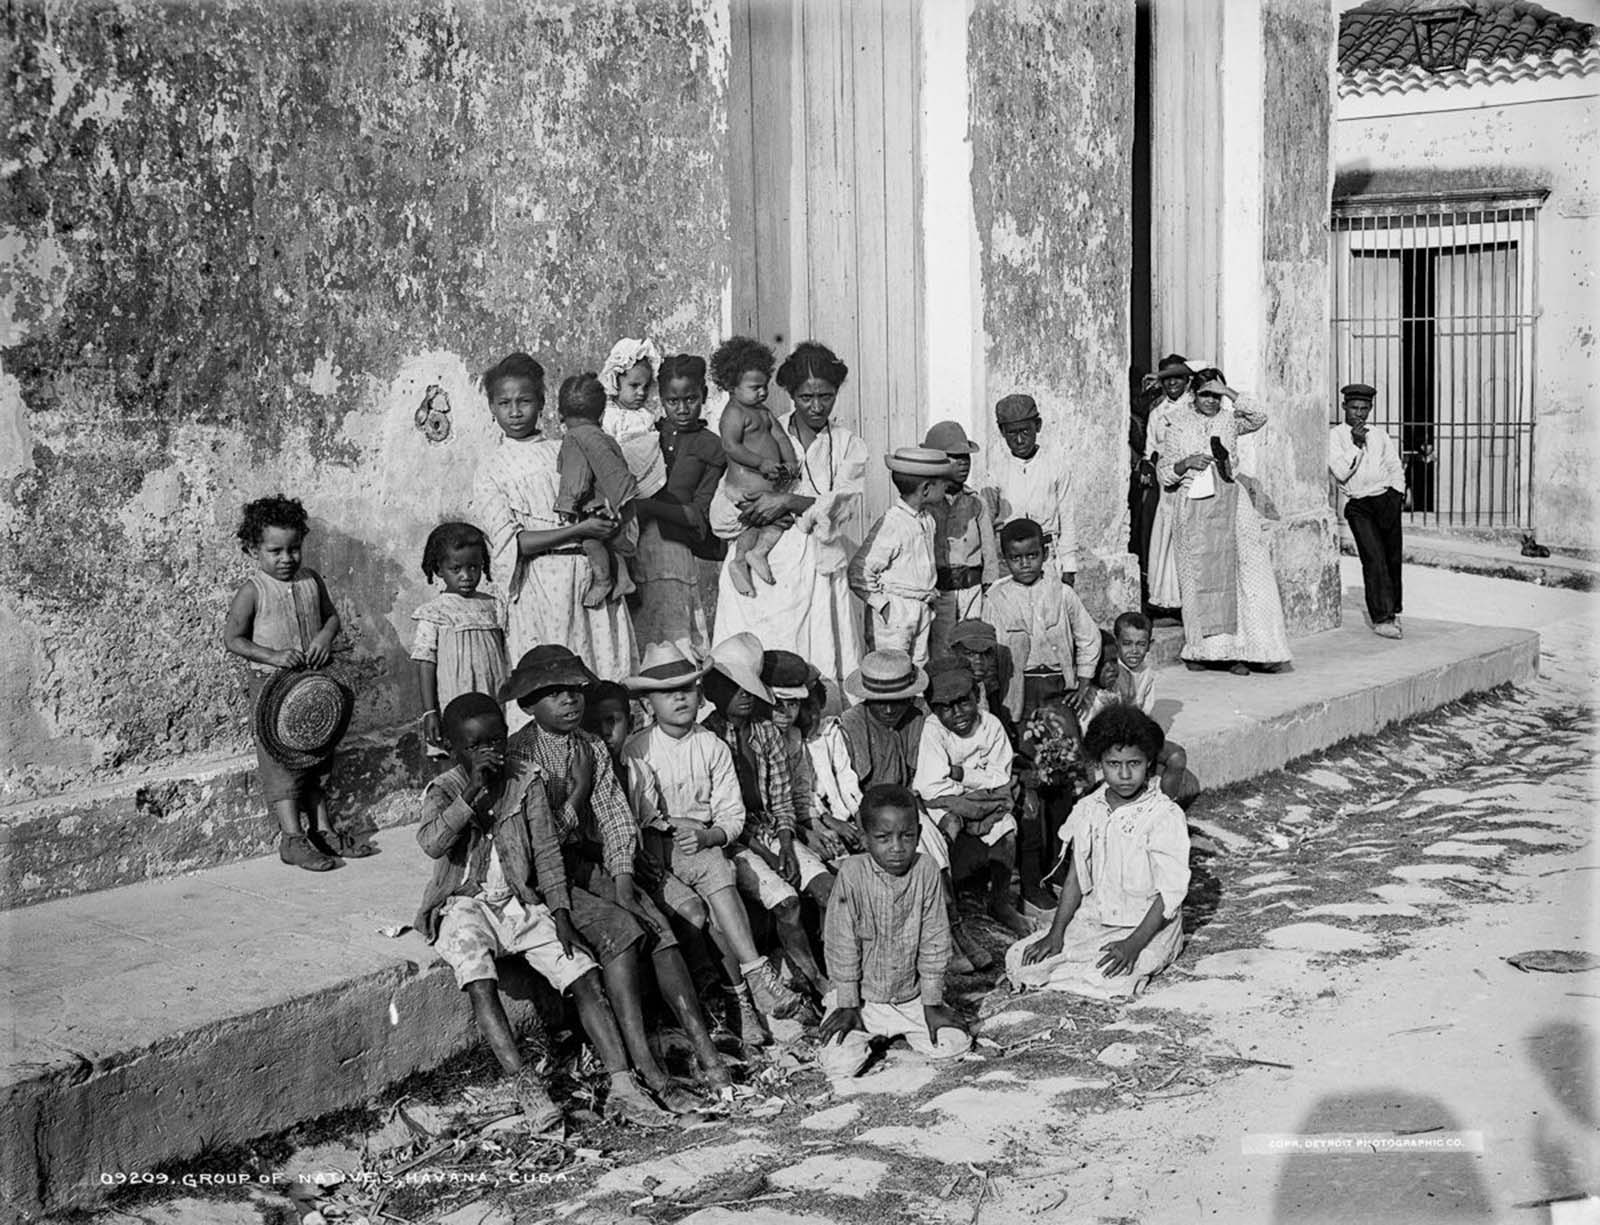 Children in Havana. 1900.